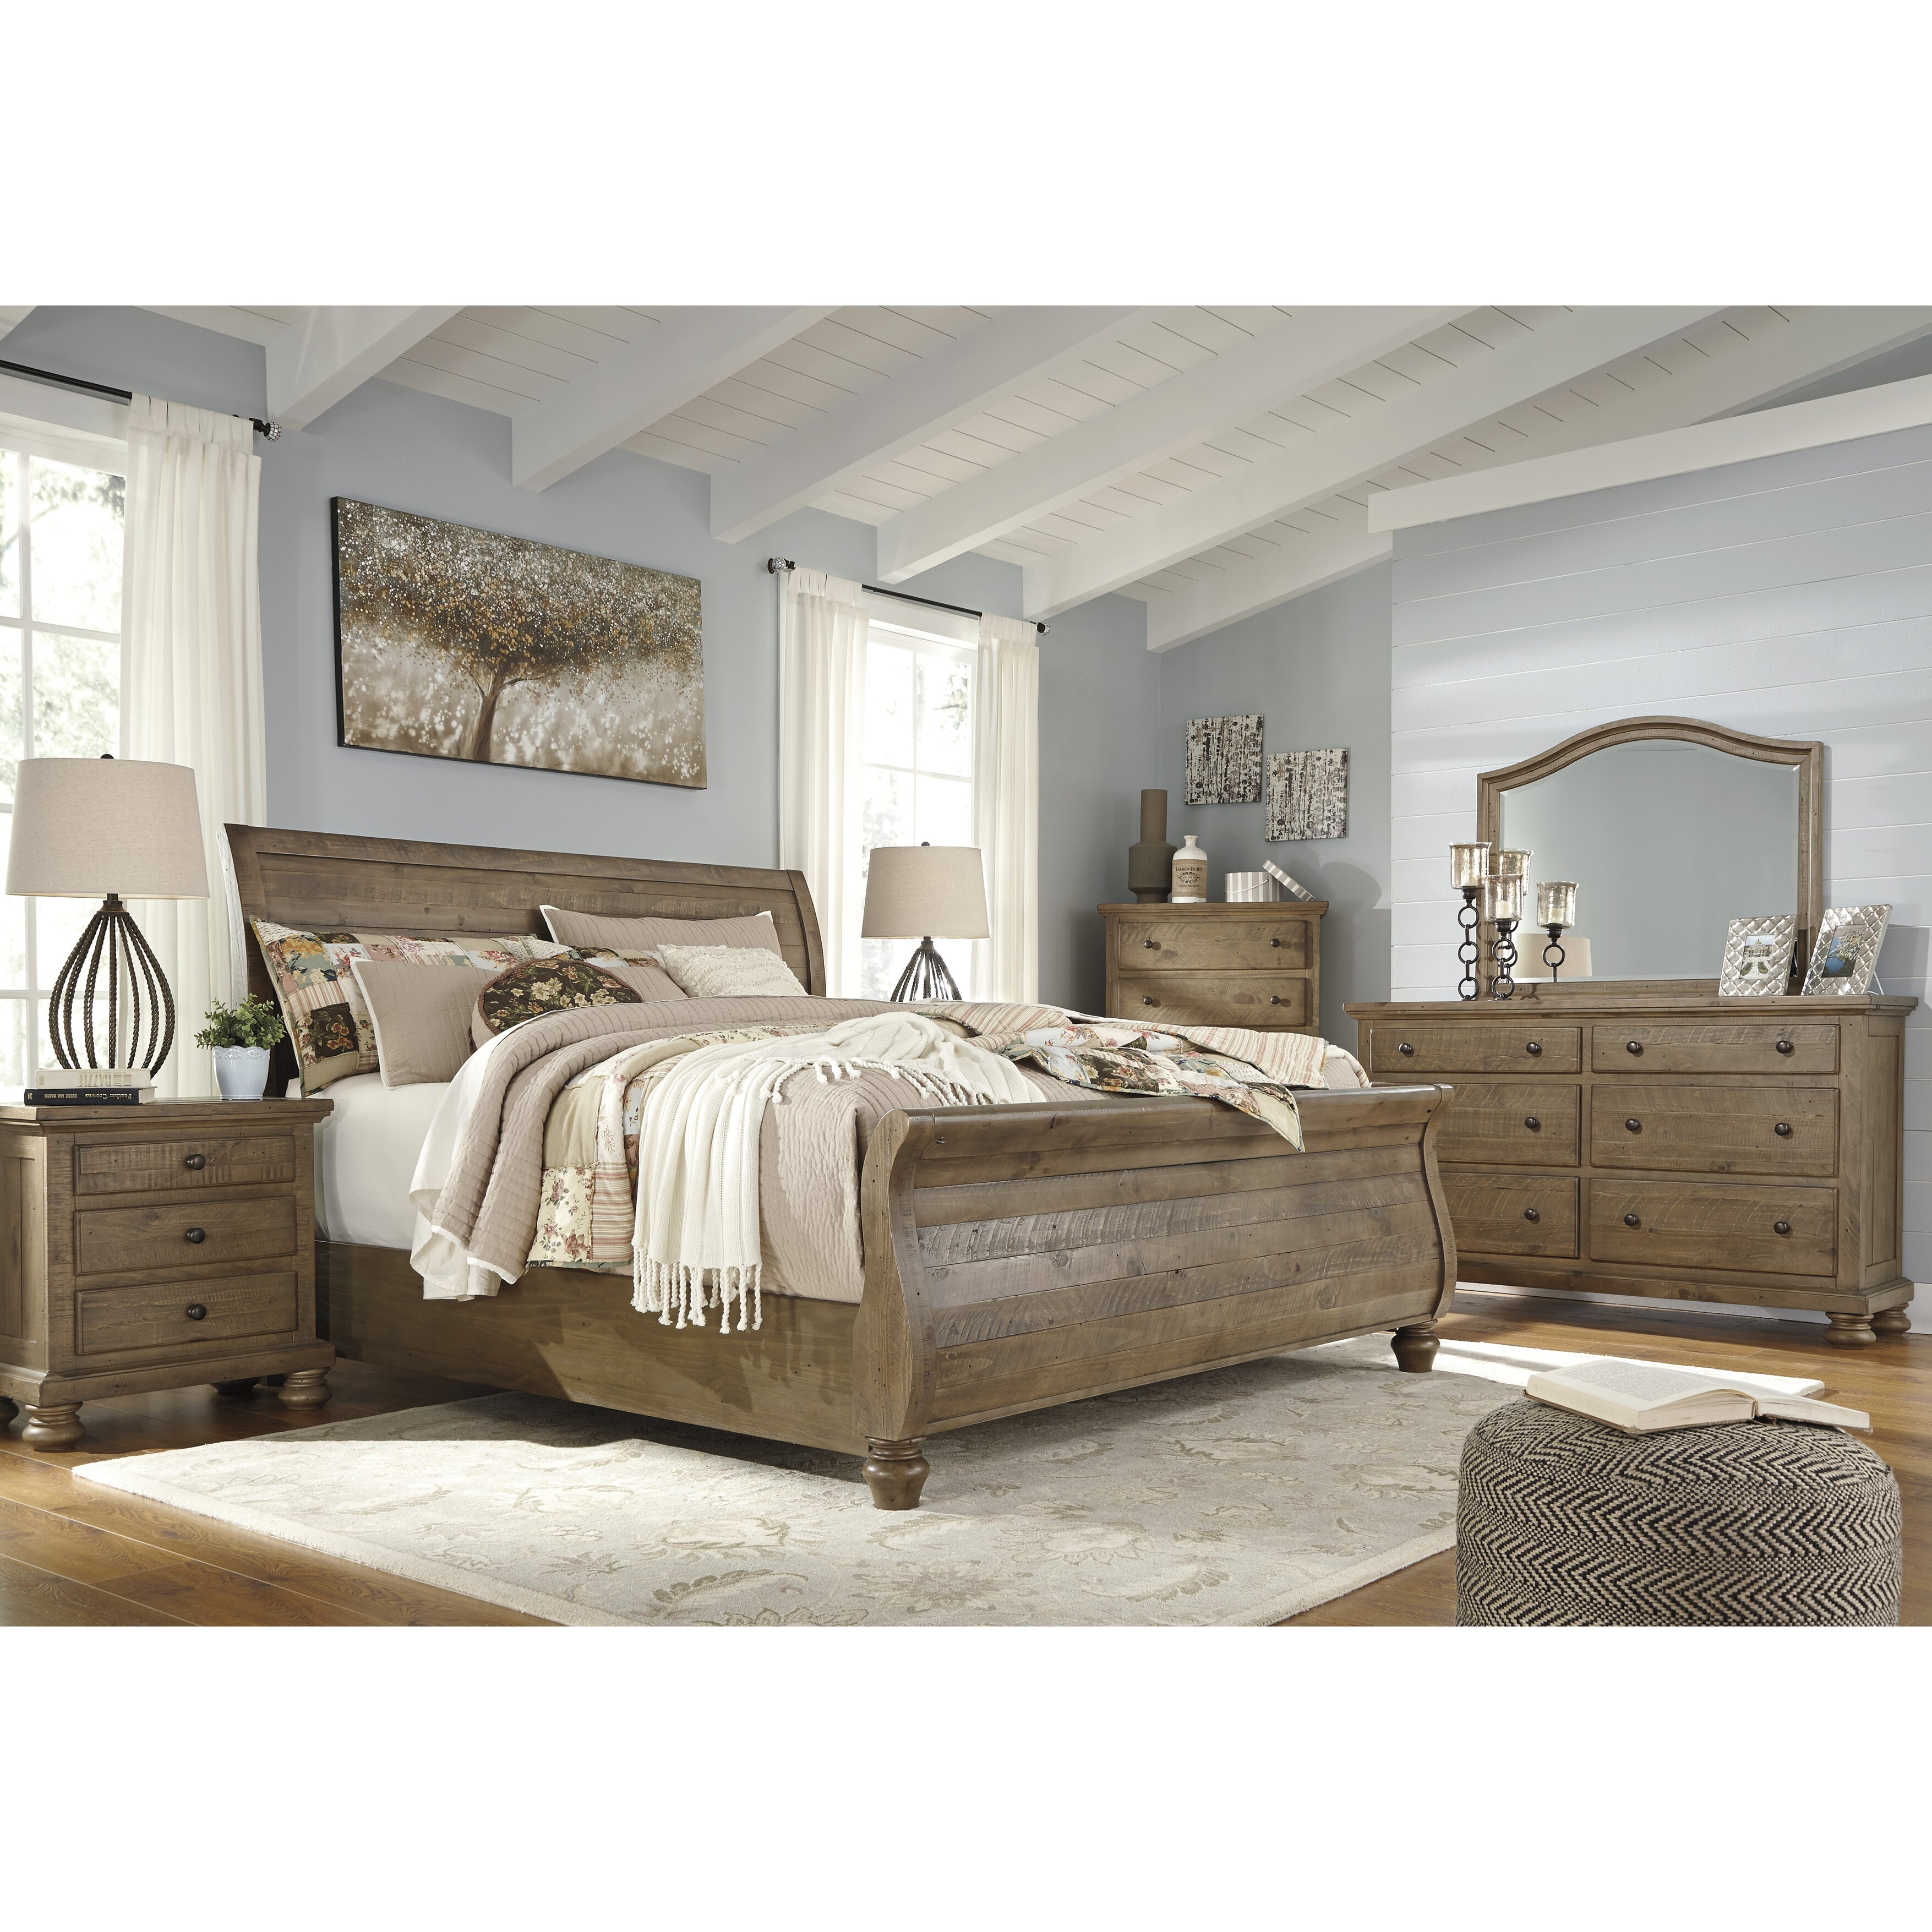 Signature design by ashley trishley sleigh customizable for Signature bedroom furniture